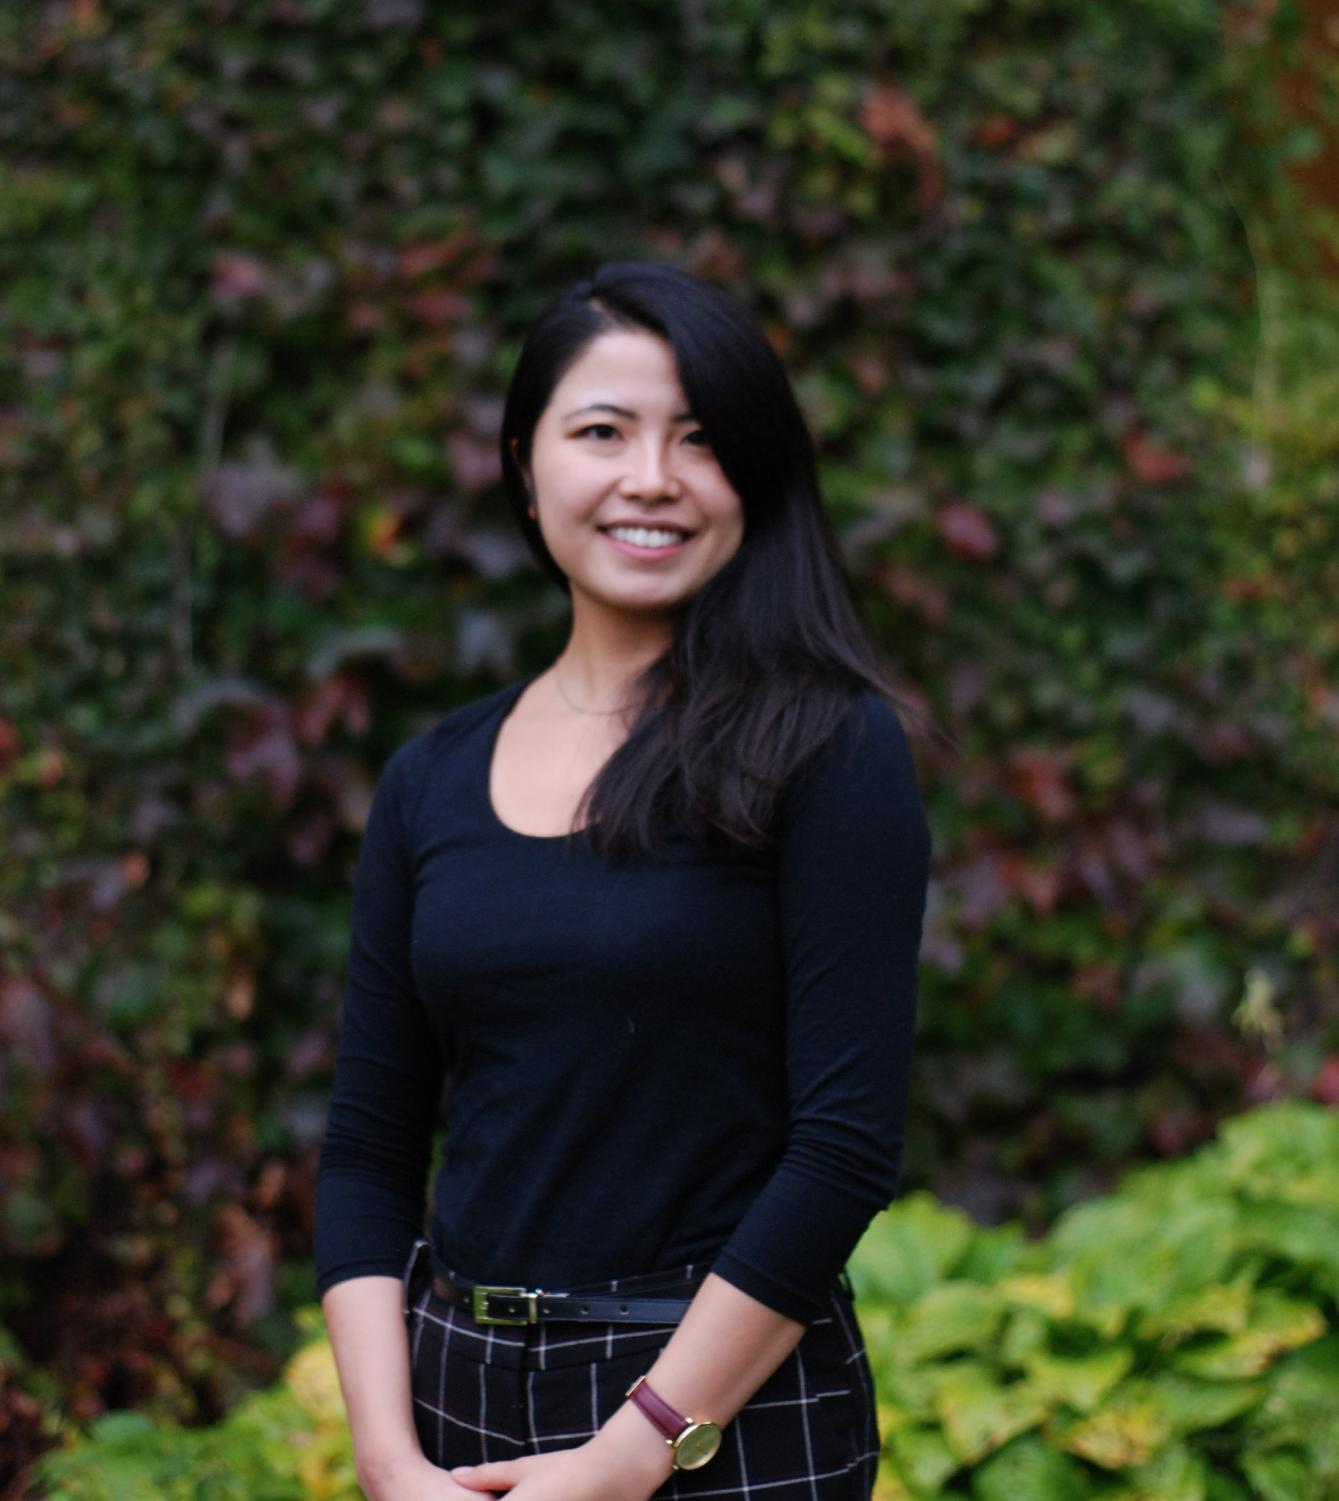 Miki Tanaka, a graduate of Winona State, was nominated for her work ethic and involvement in the TESOL department while showing resilience in her work.